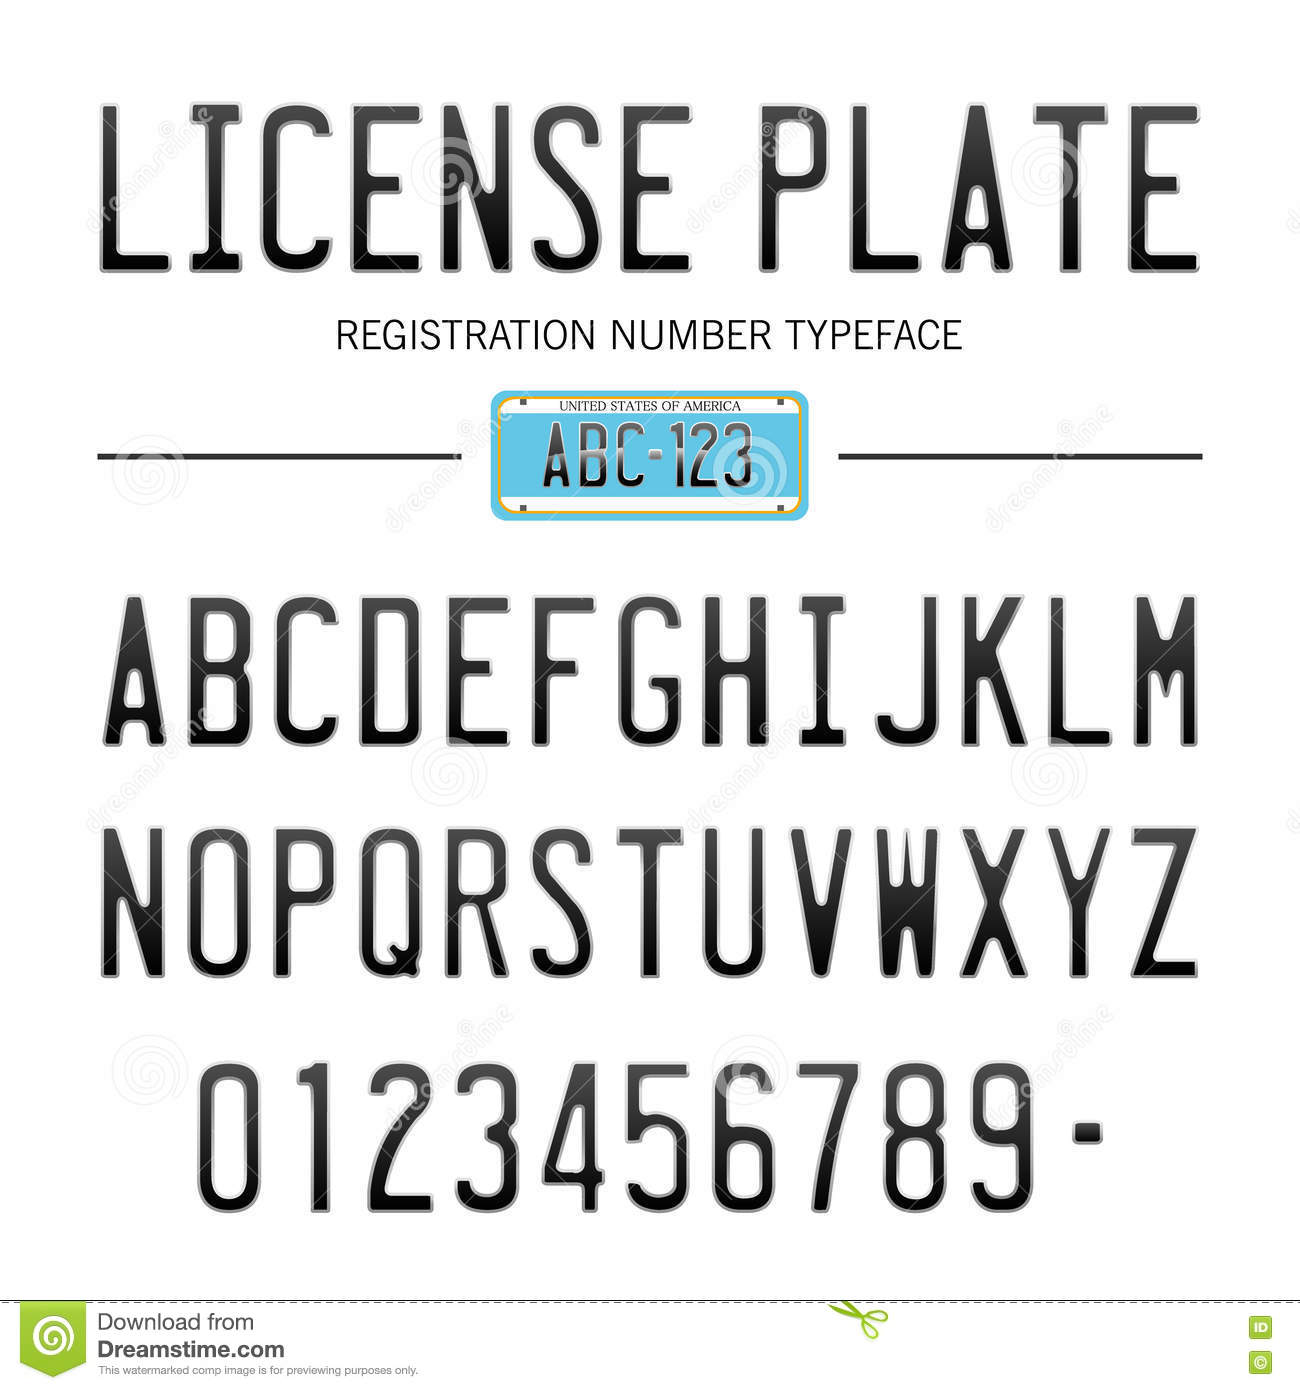 Modern license plate font for registration numbers with sample design isolated on background